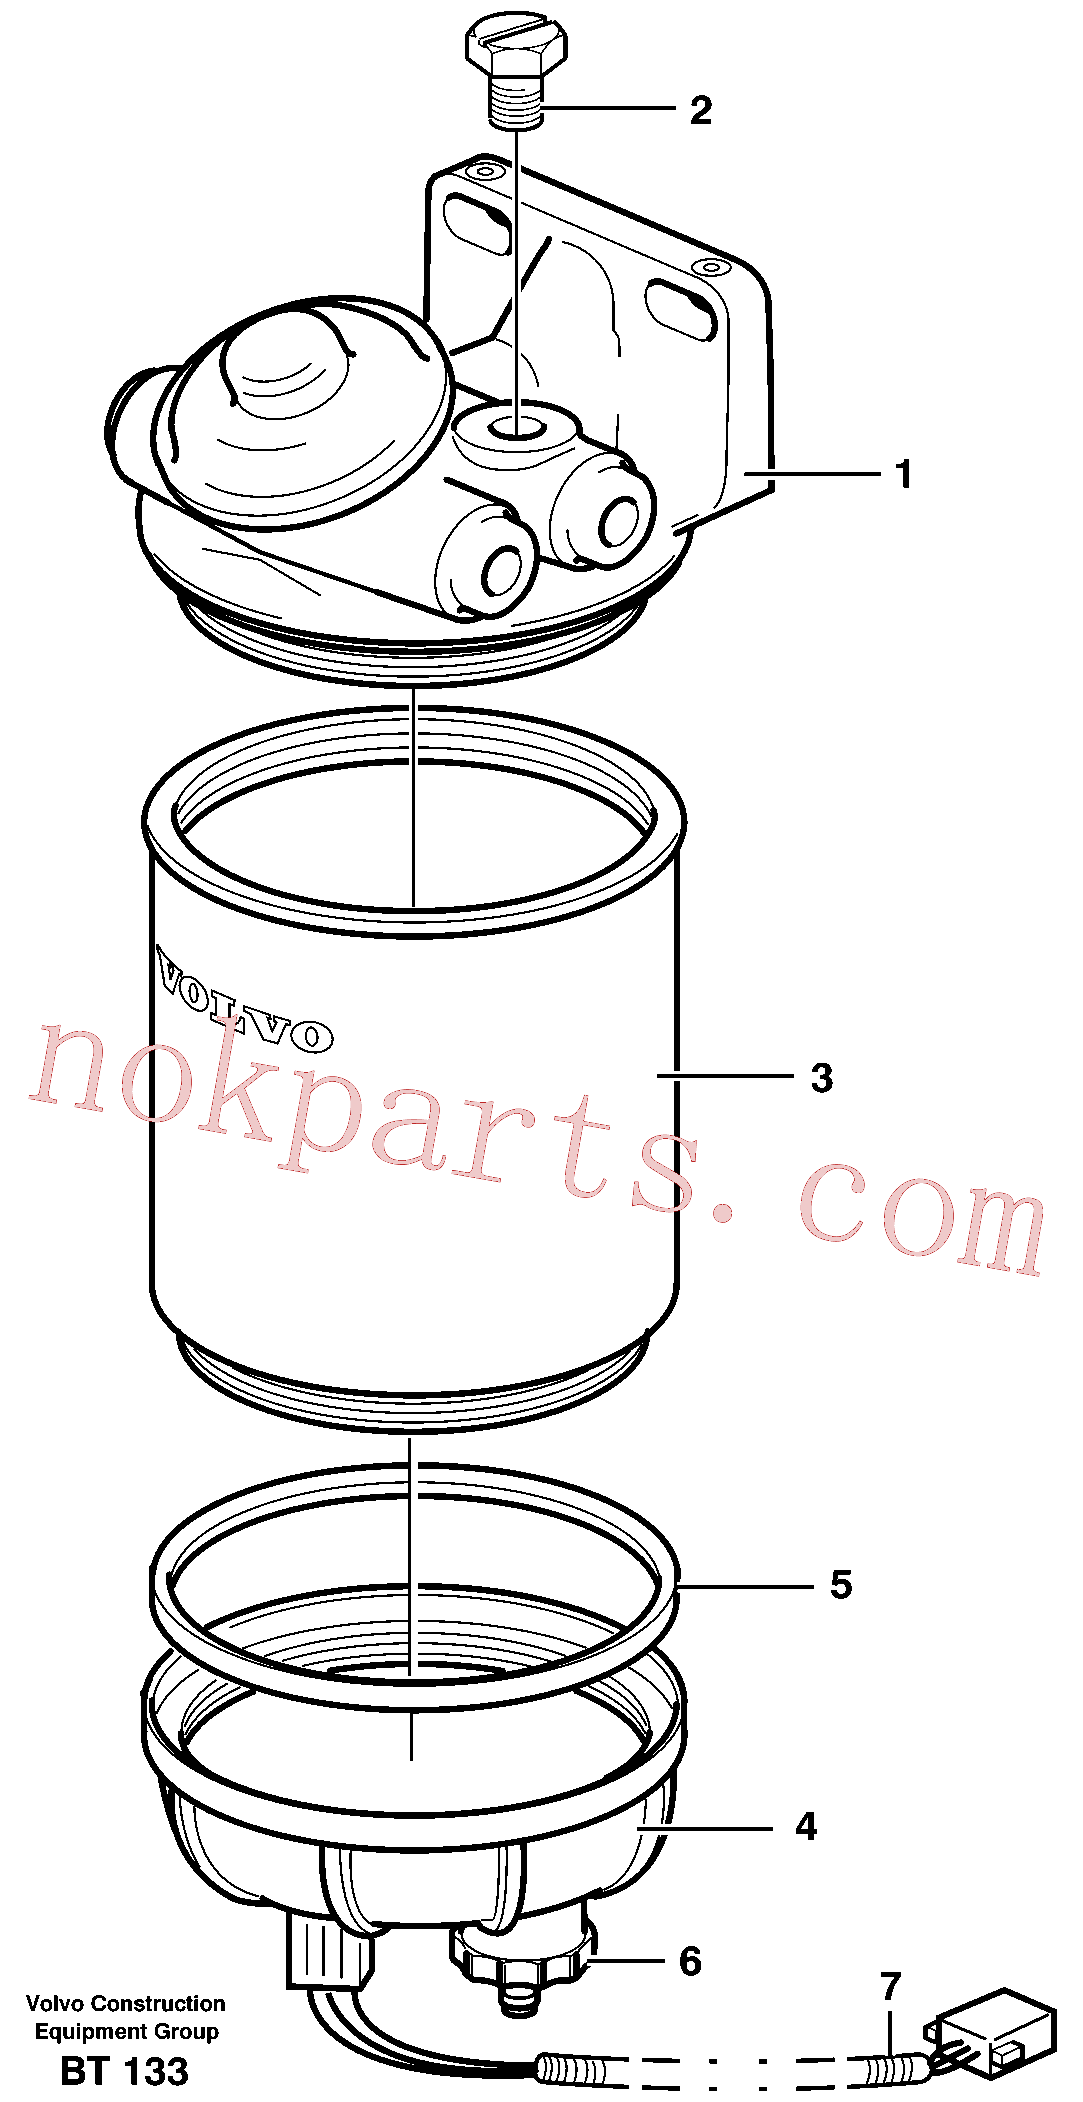 VOE11110683 for Volvo Water separator(BT133 assembly)